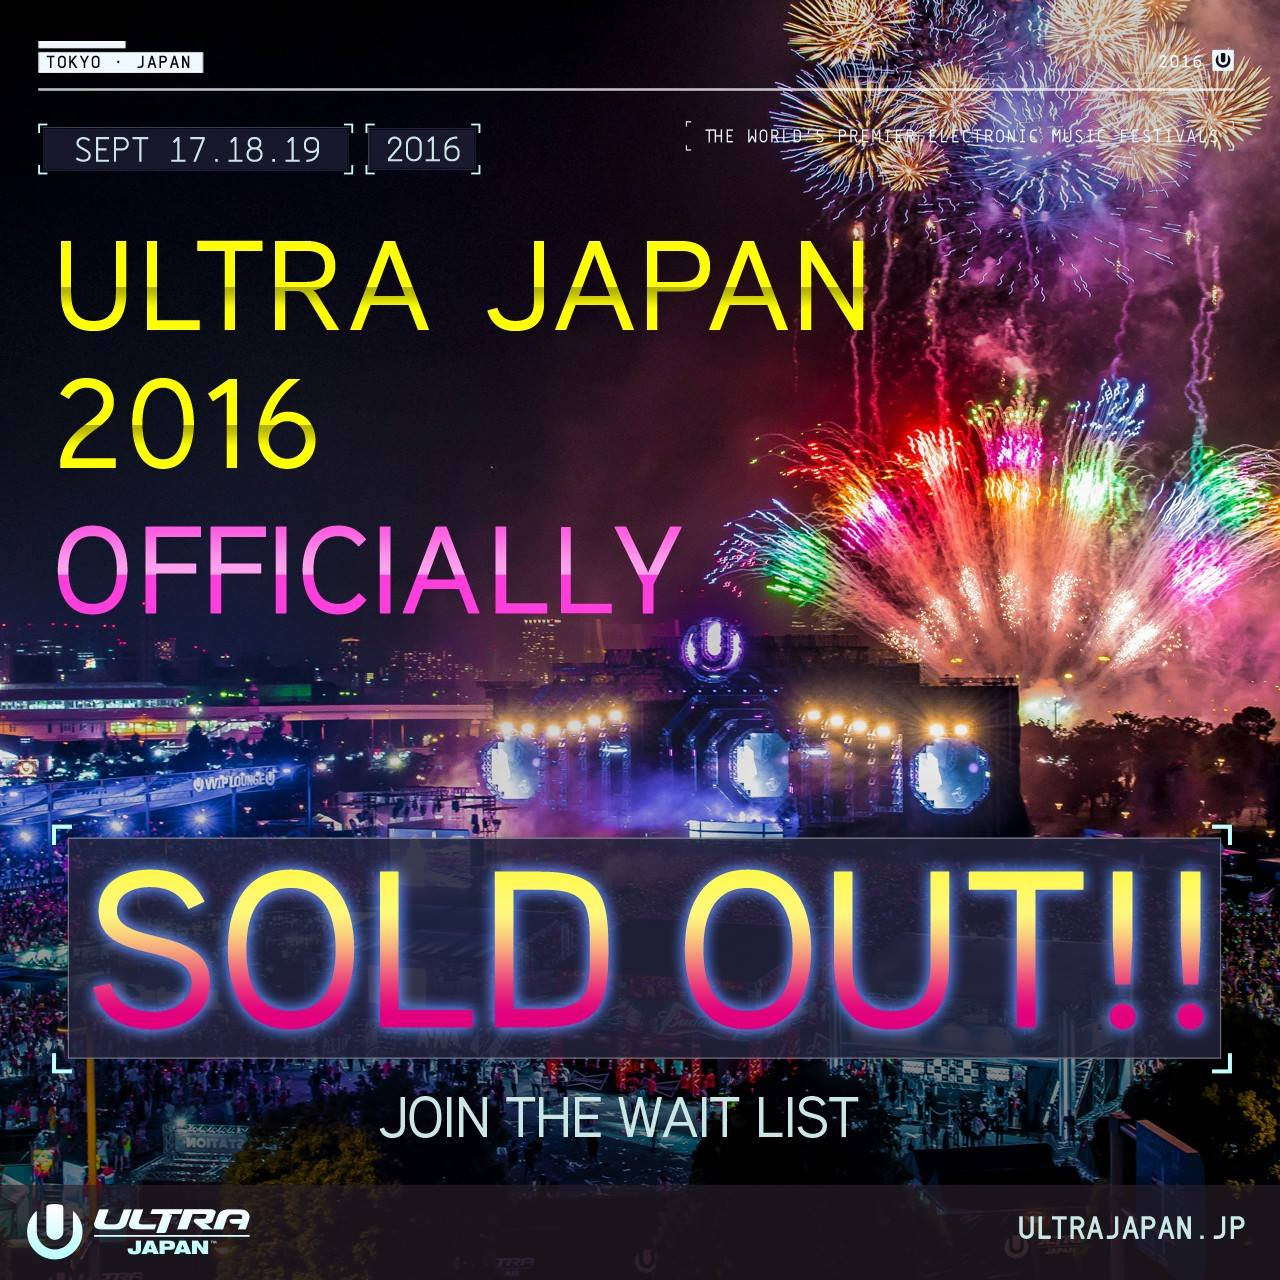 ultra-japan-2016-officially-sold-out